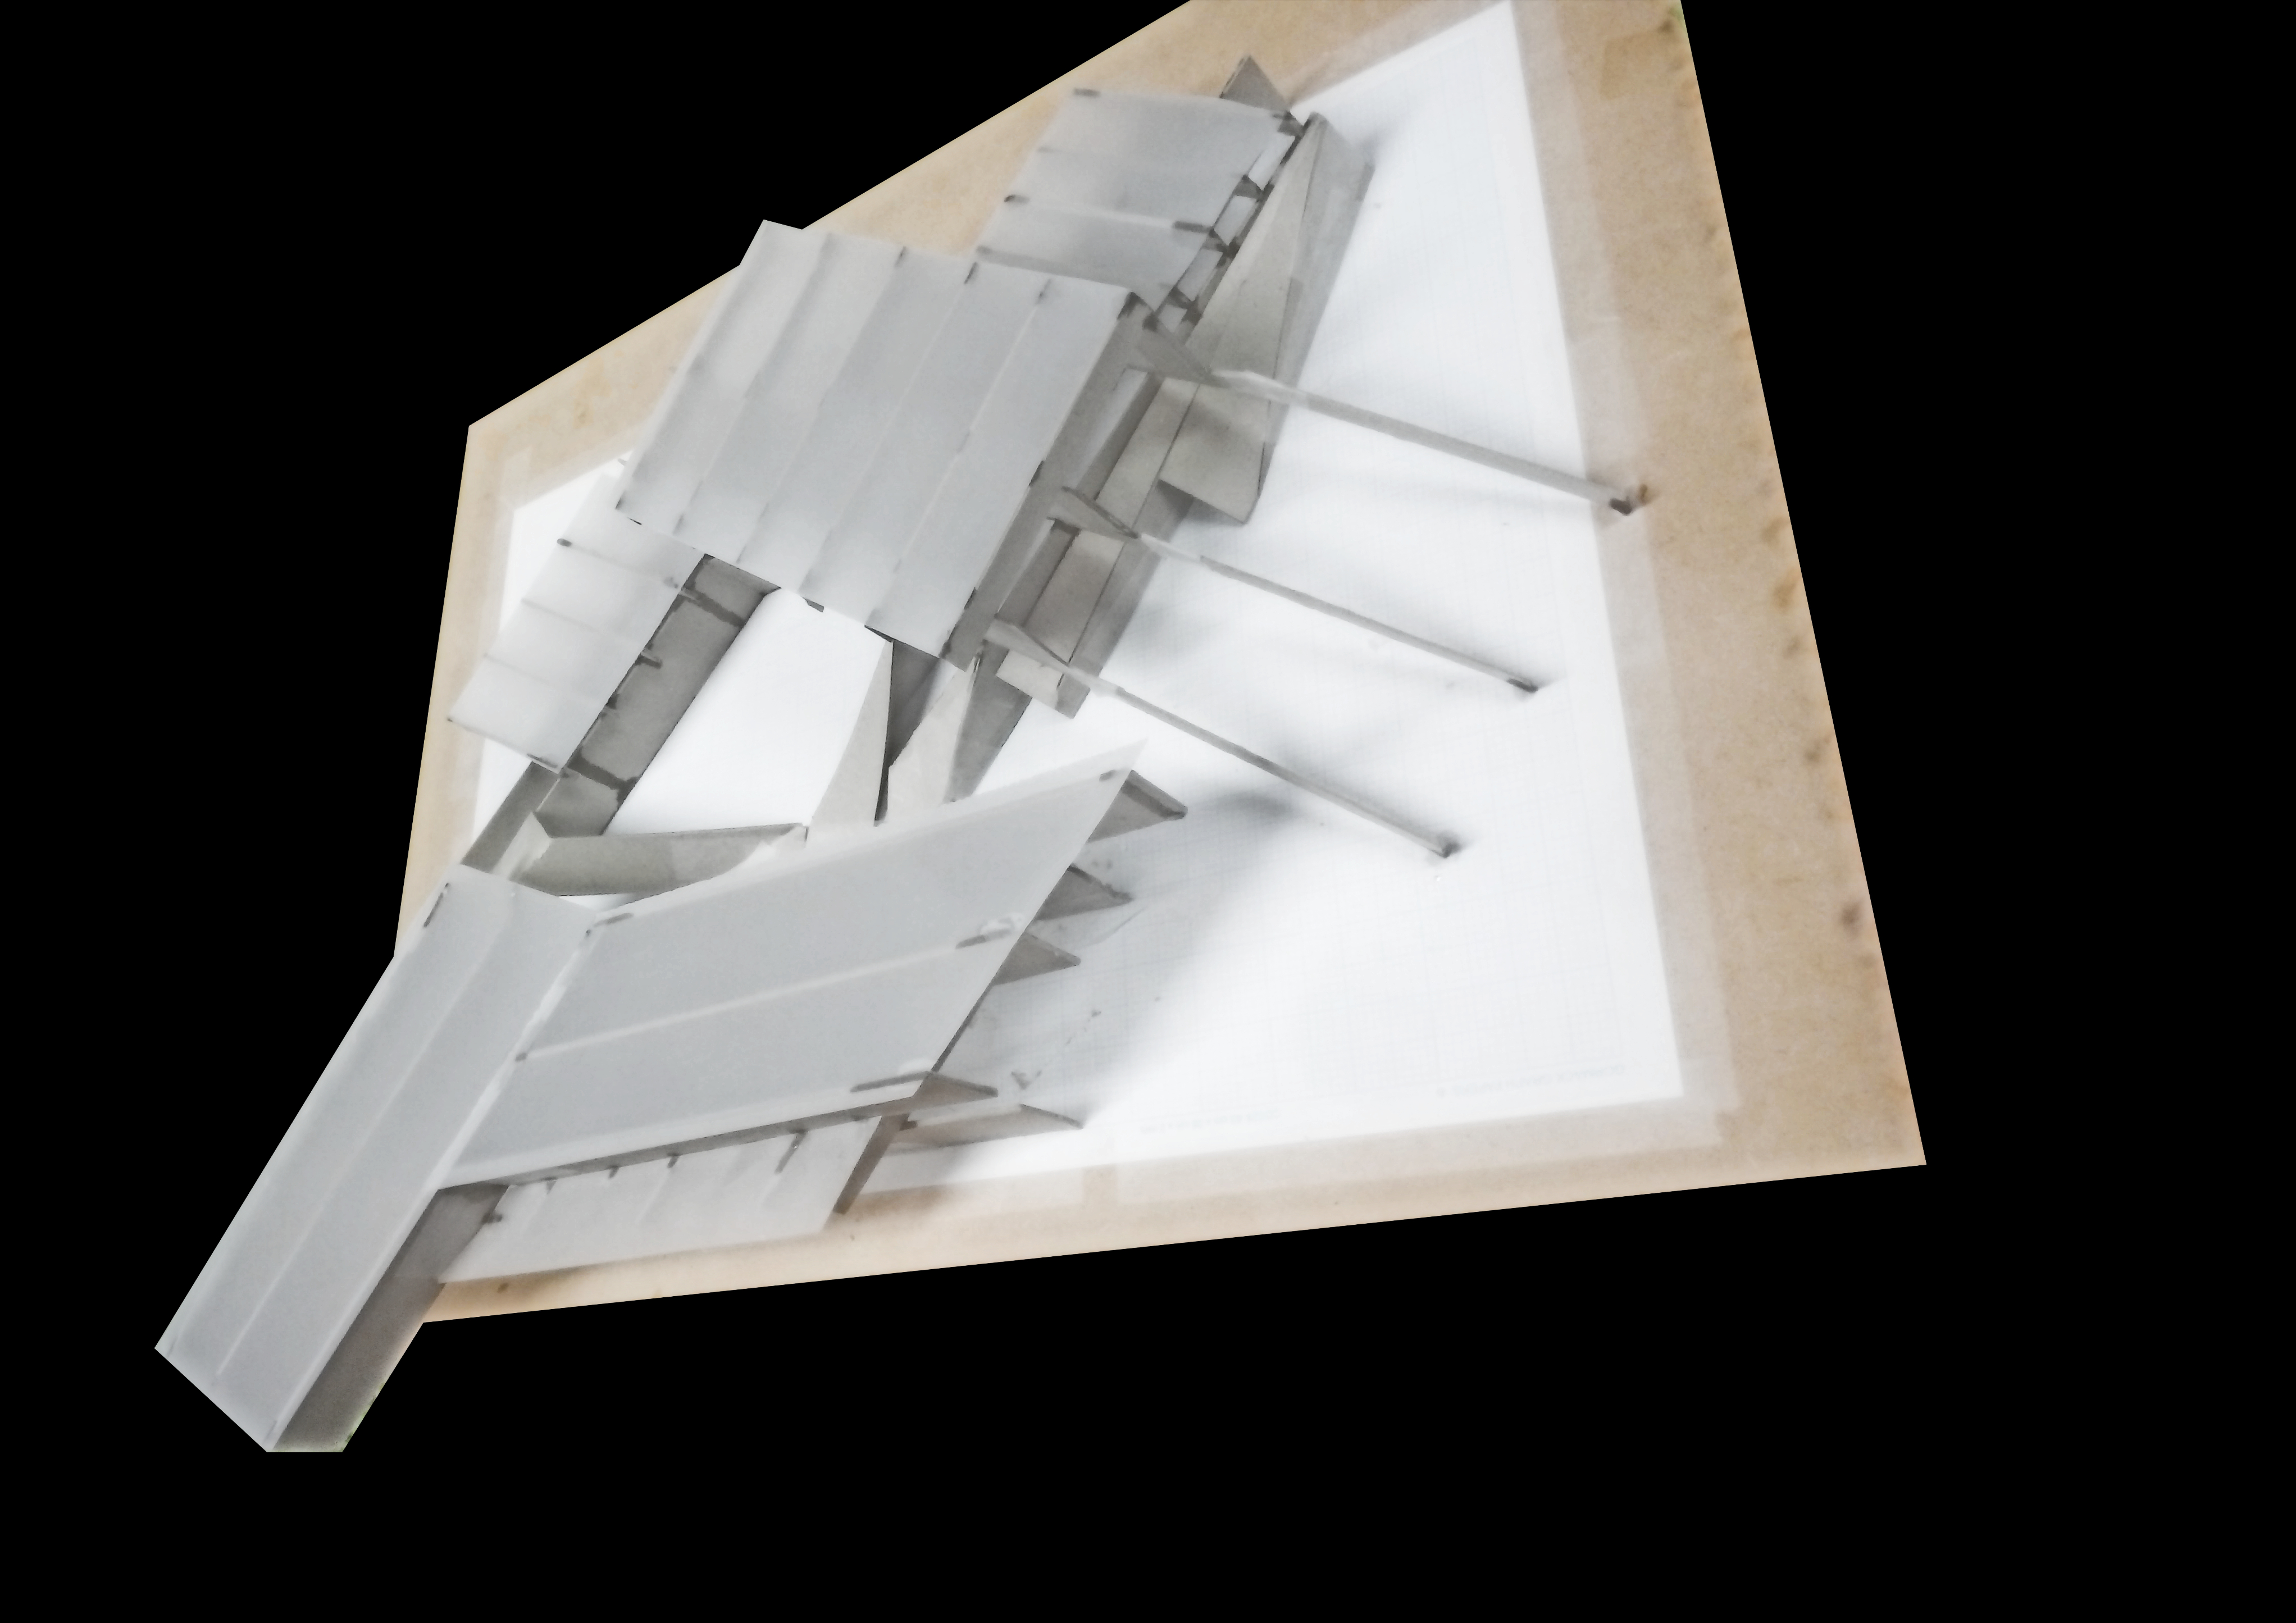 Card Architectural Concept Model